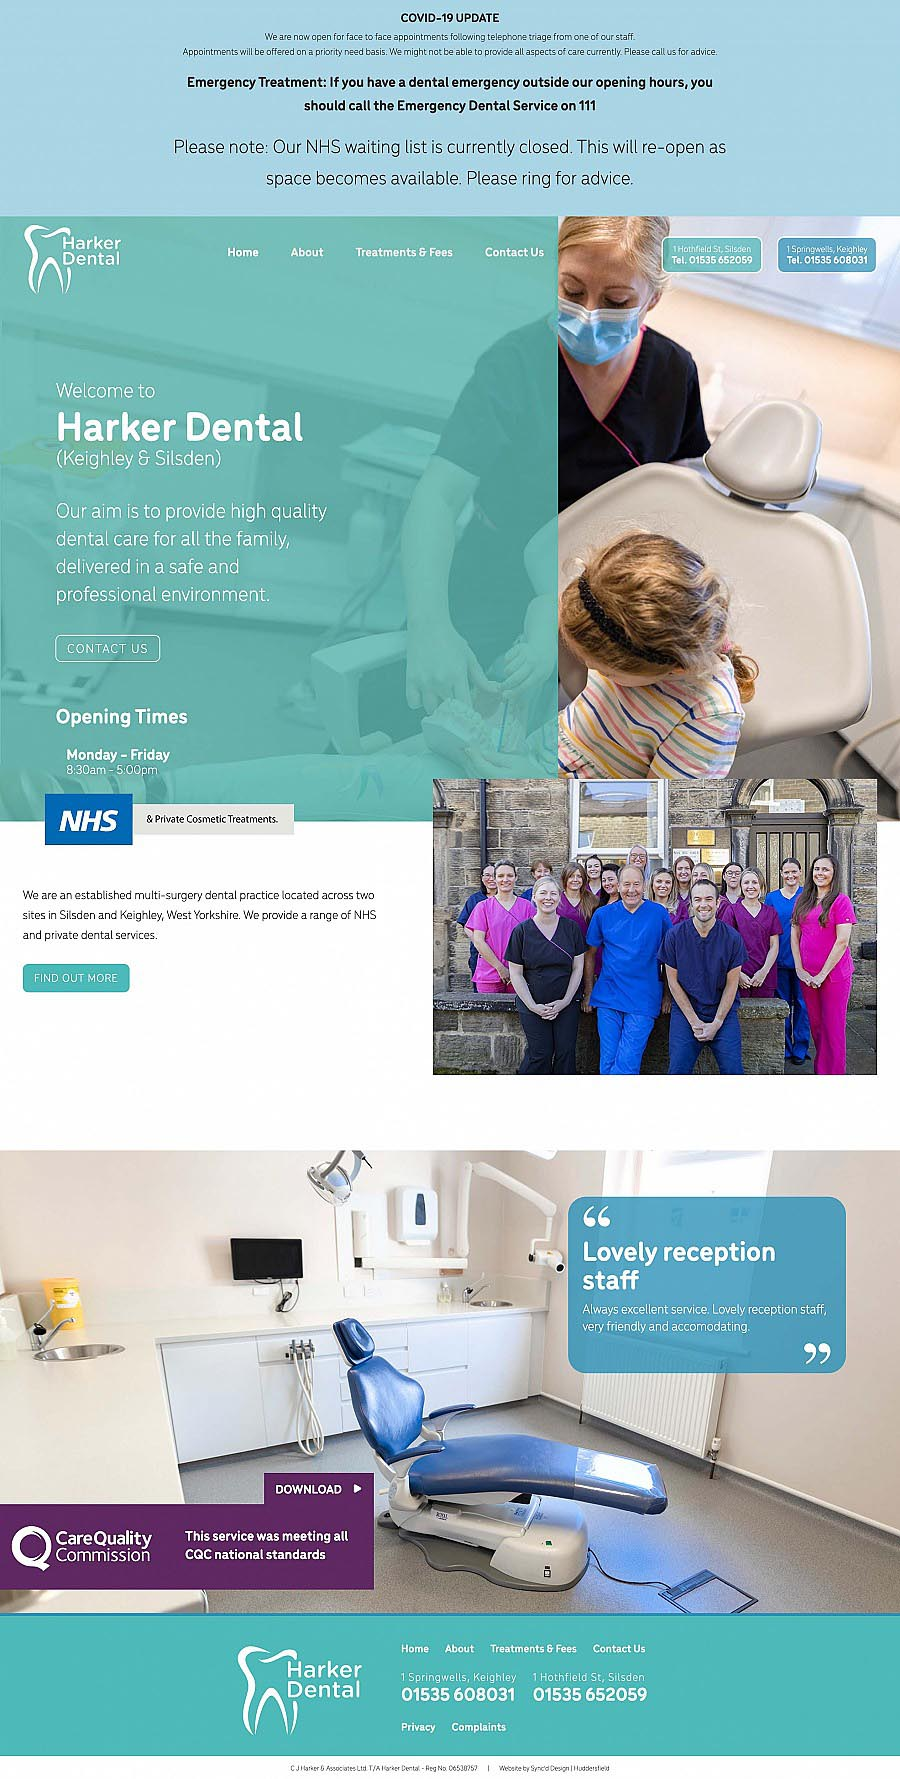 Harker dental website1